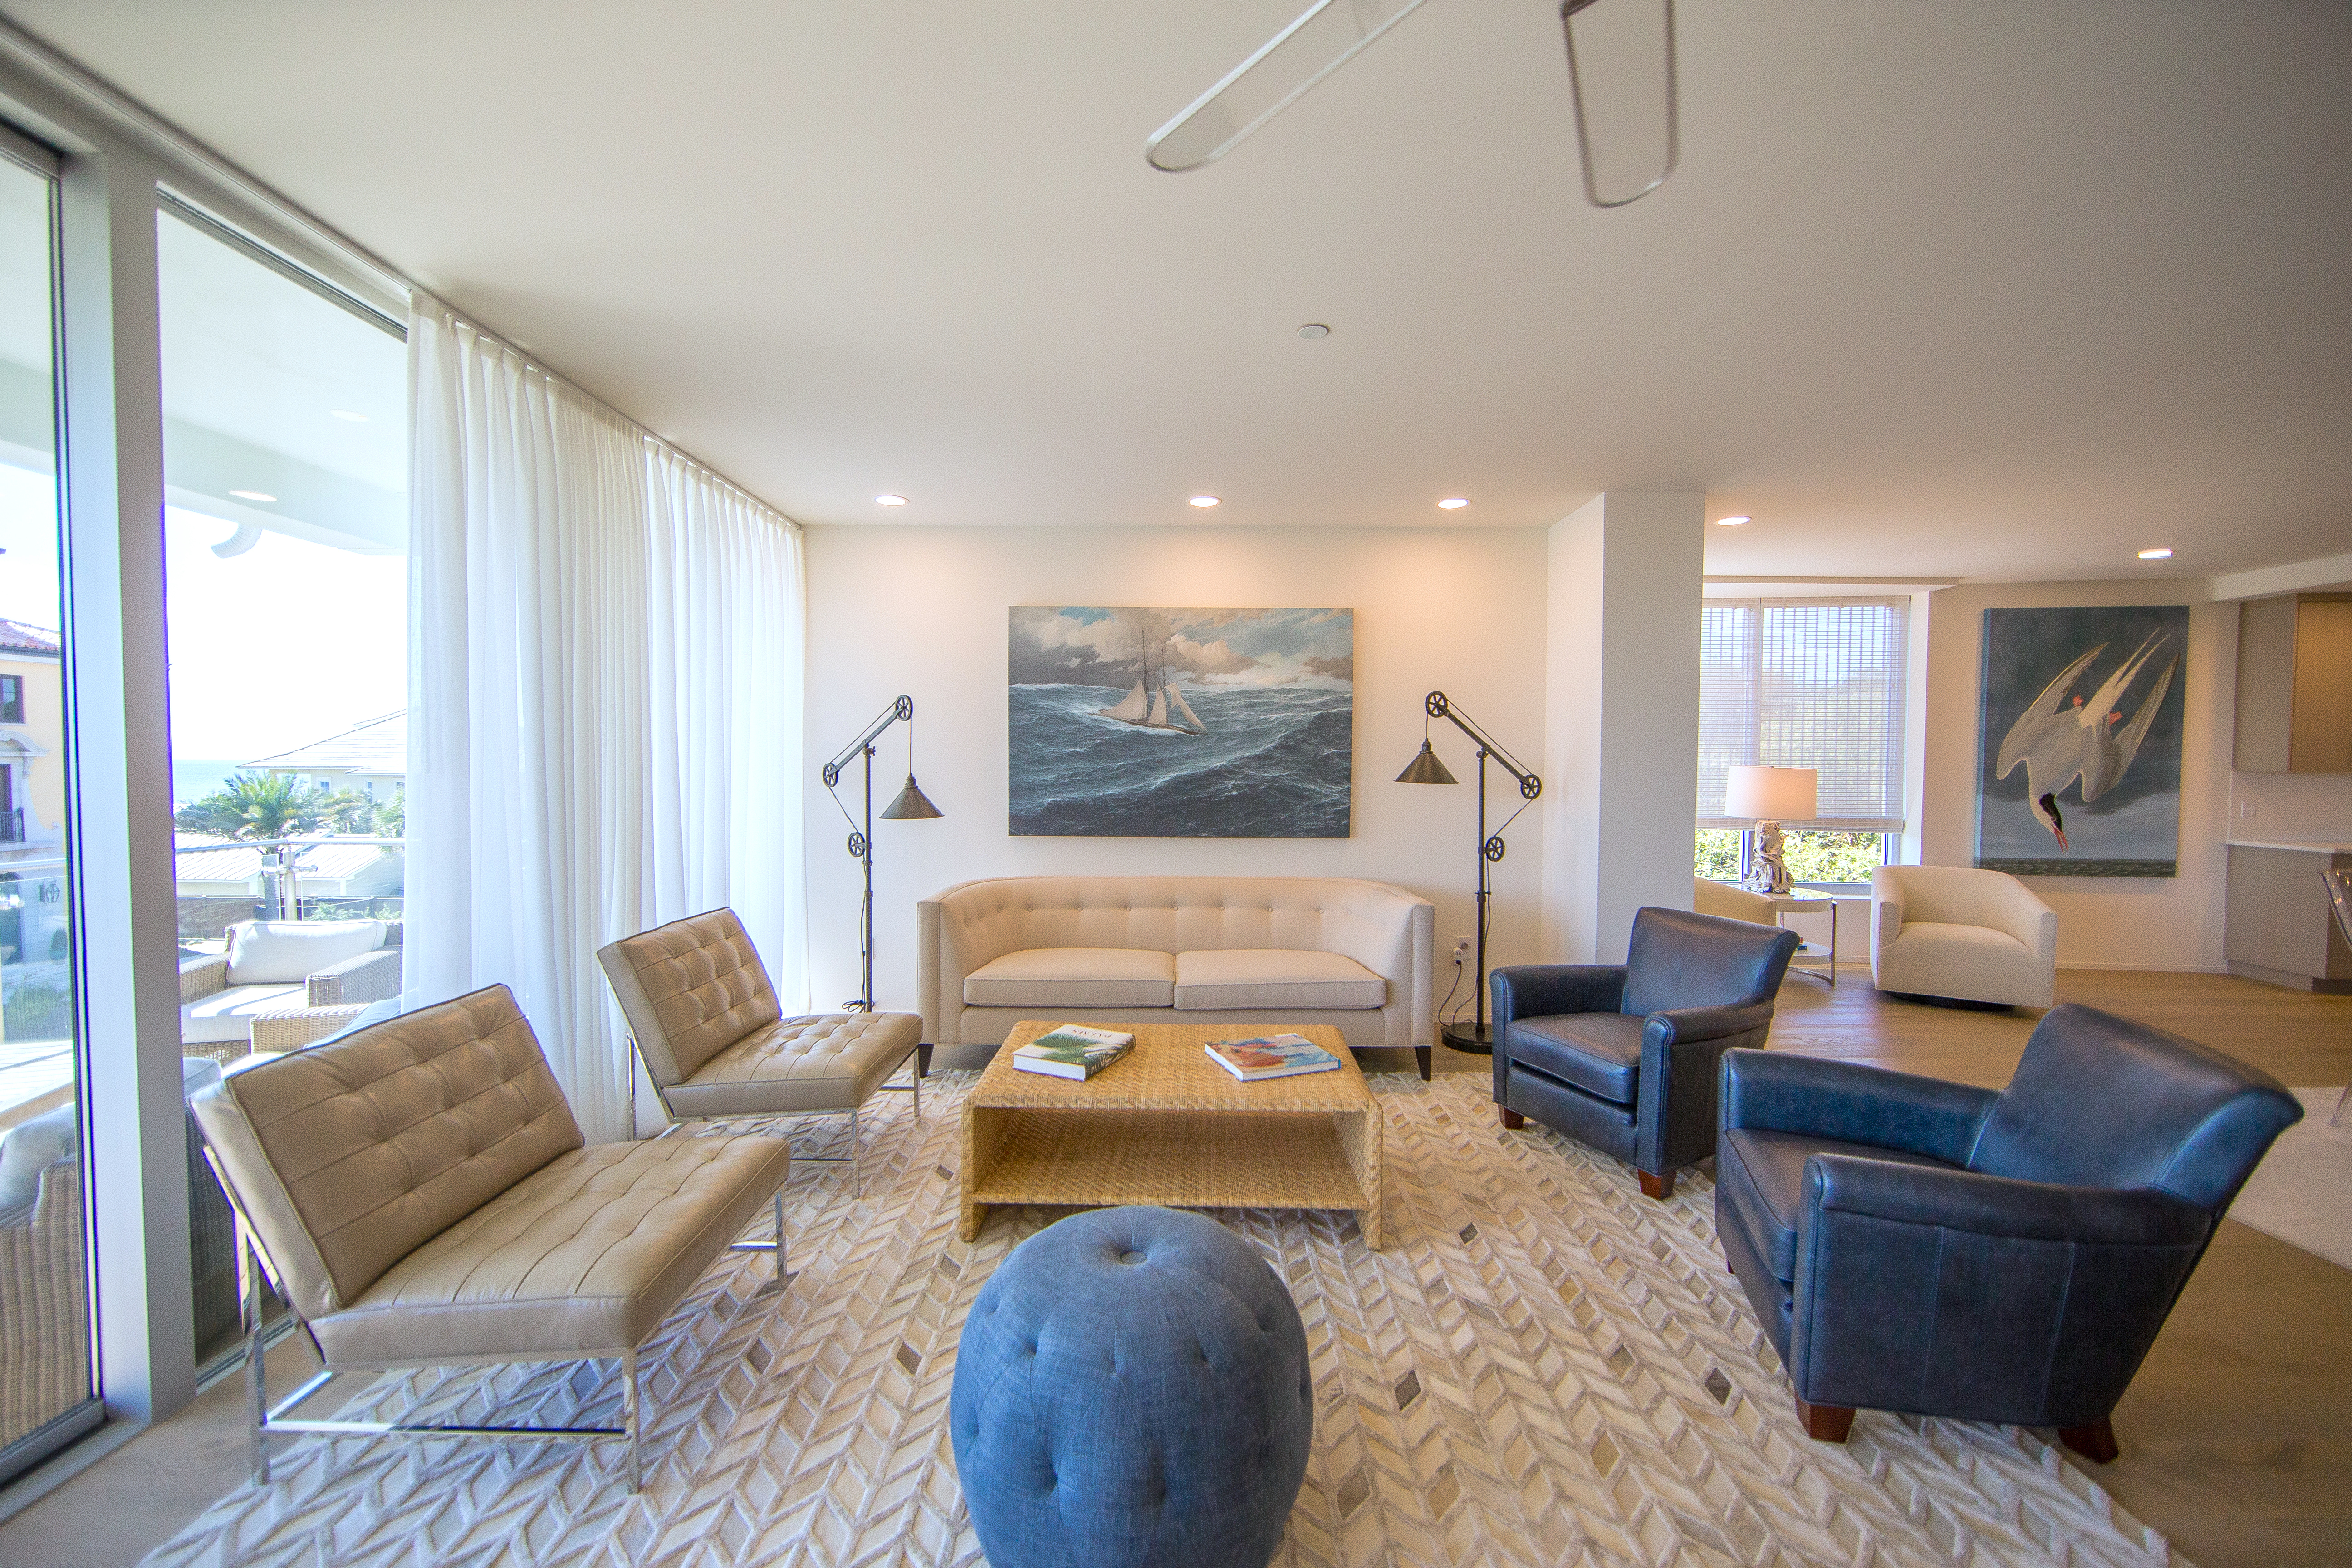 Separate seating area in the large living space